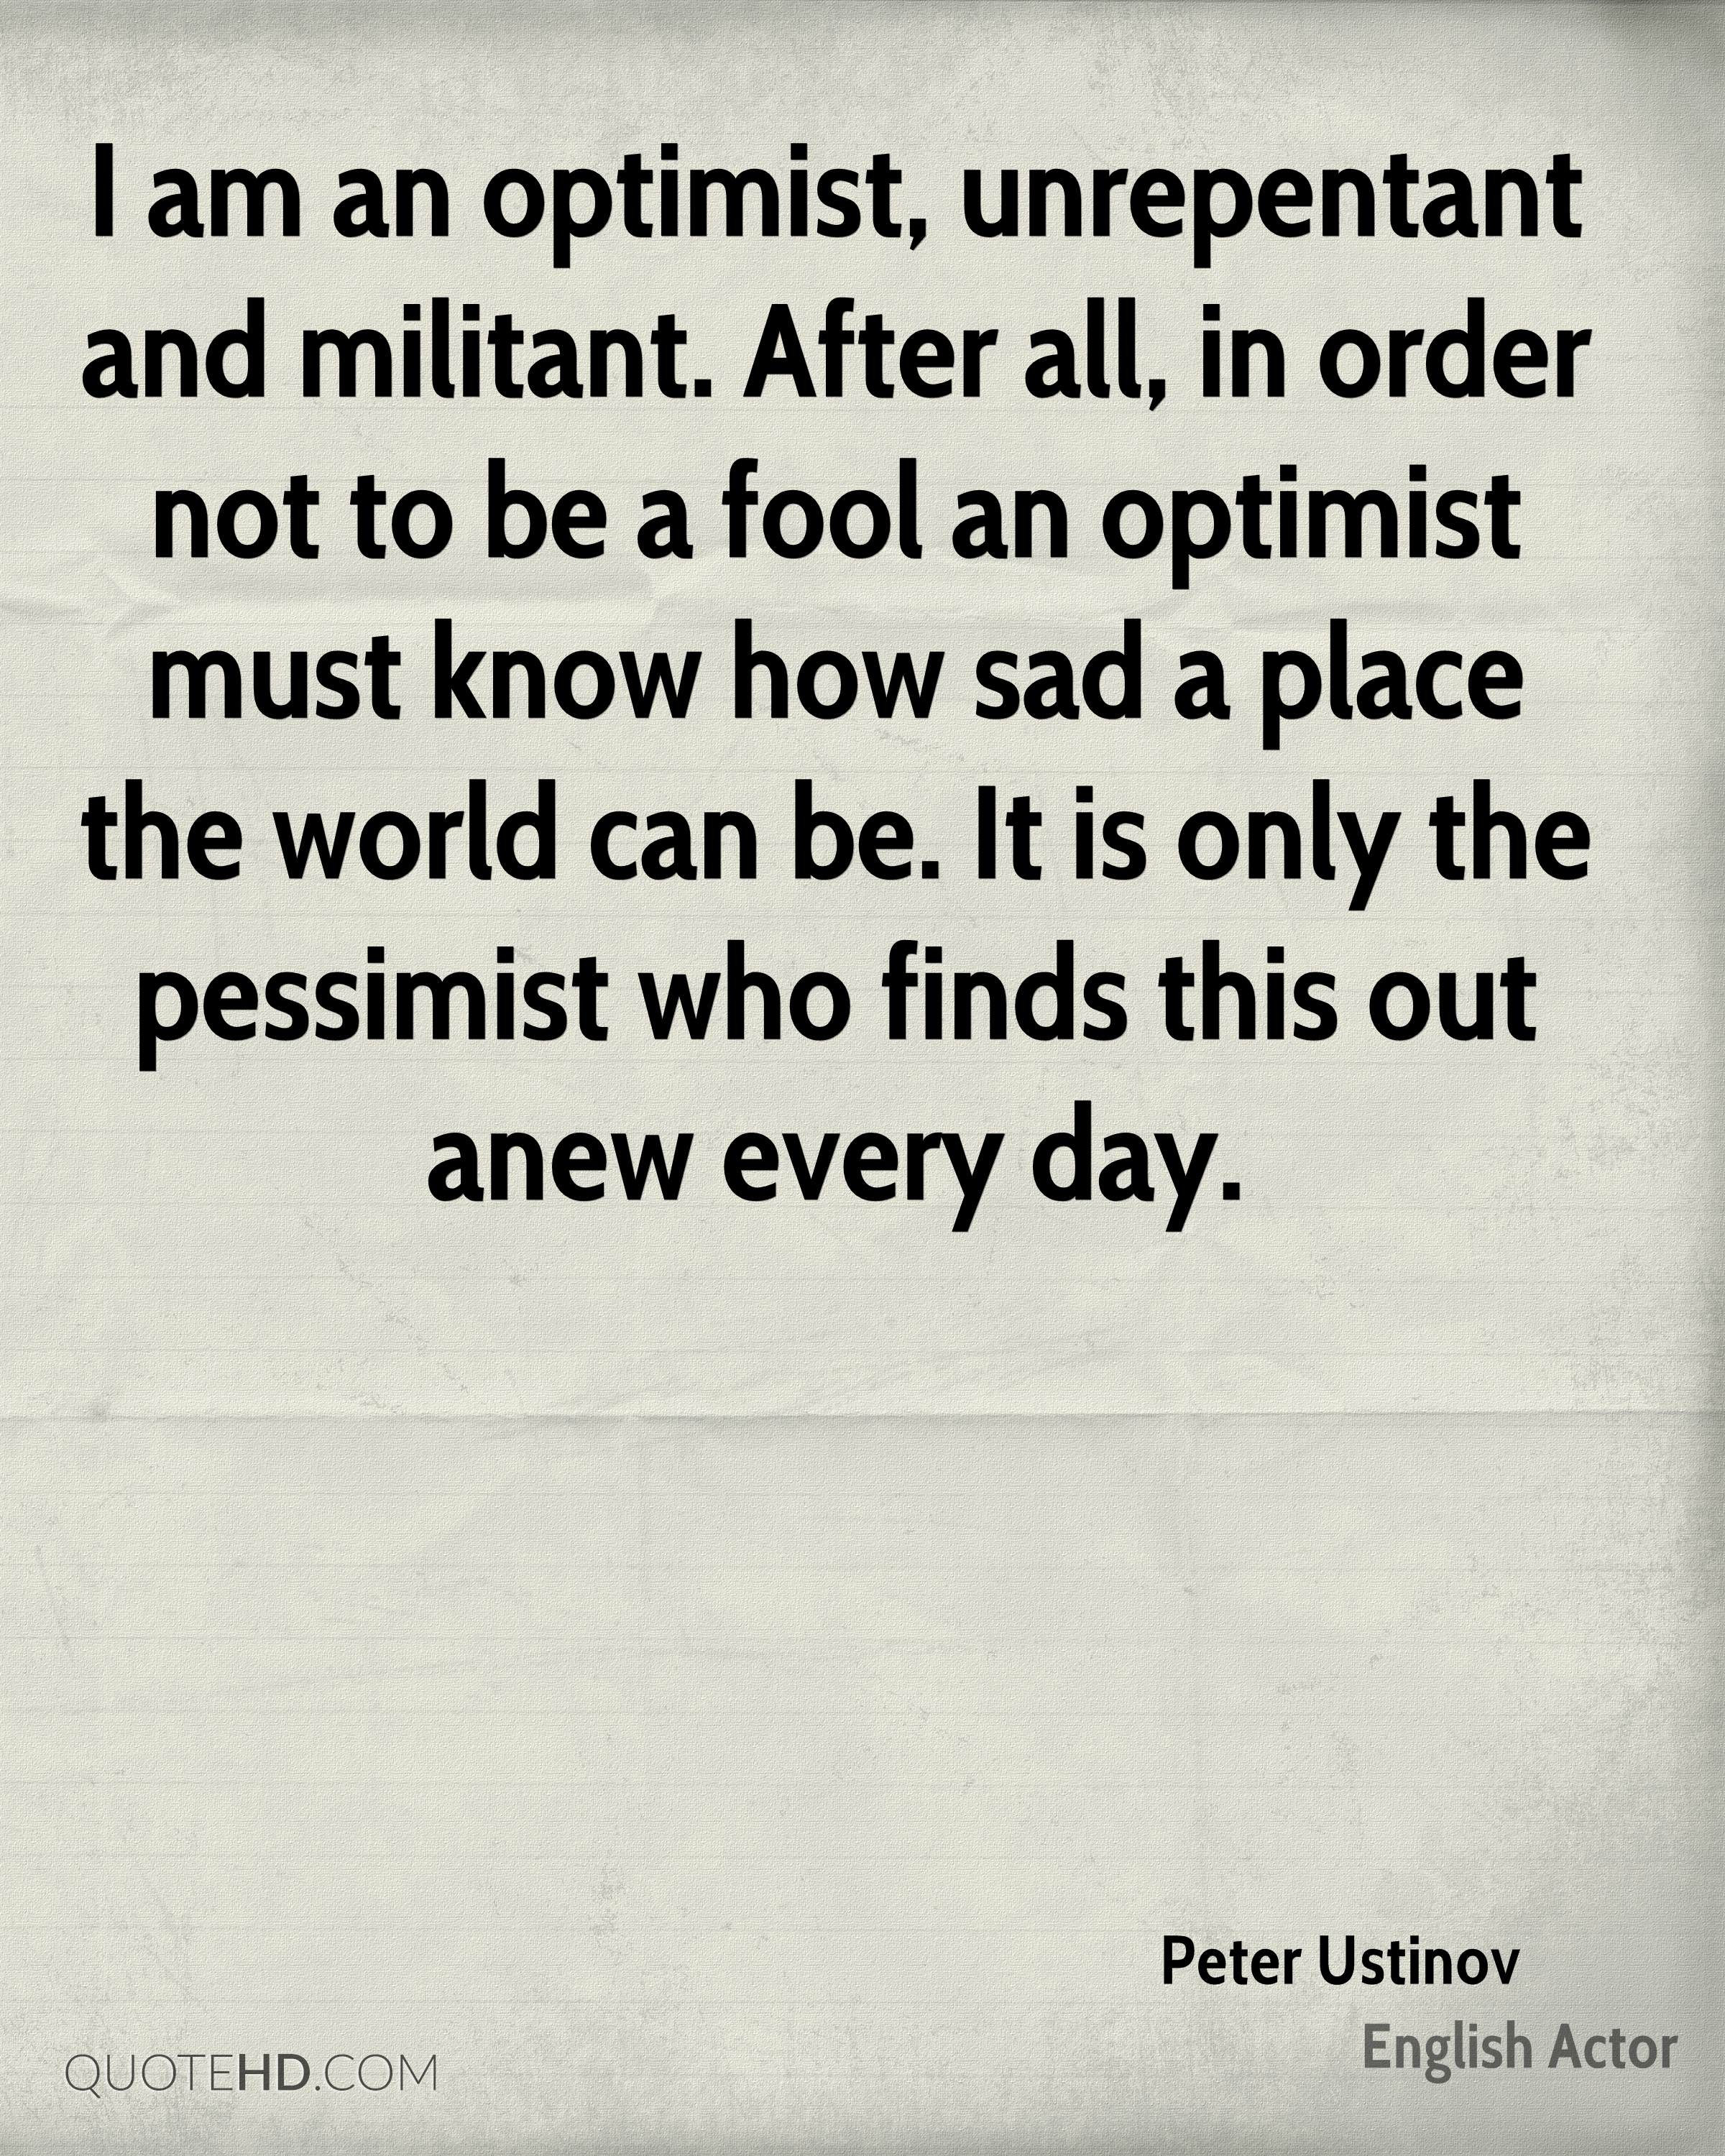 I Am An Optimist, Unrepentant And Militant. After All, In Order Not To